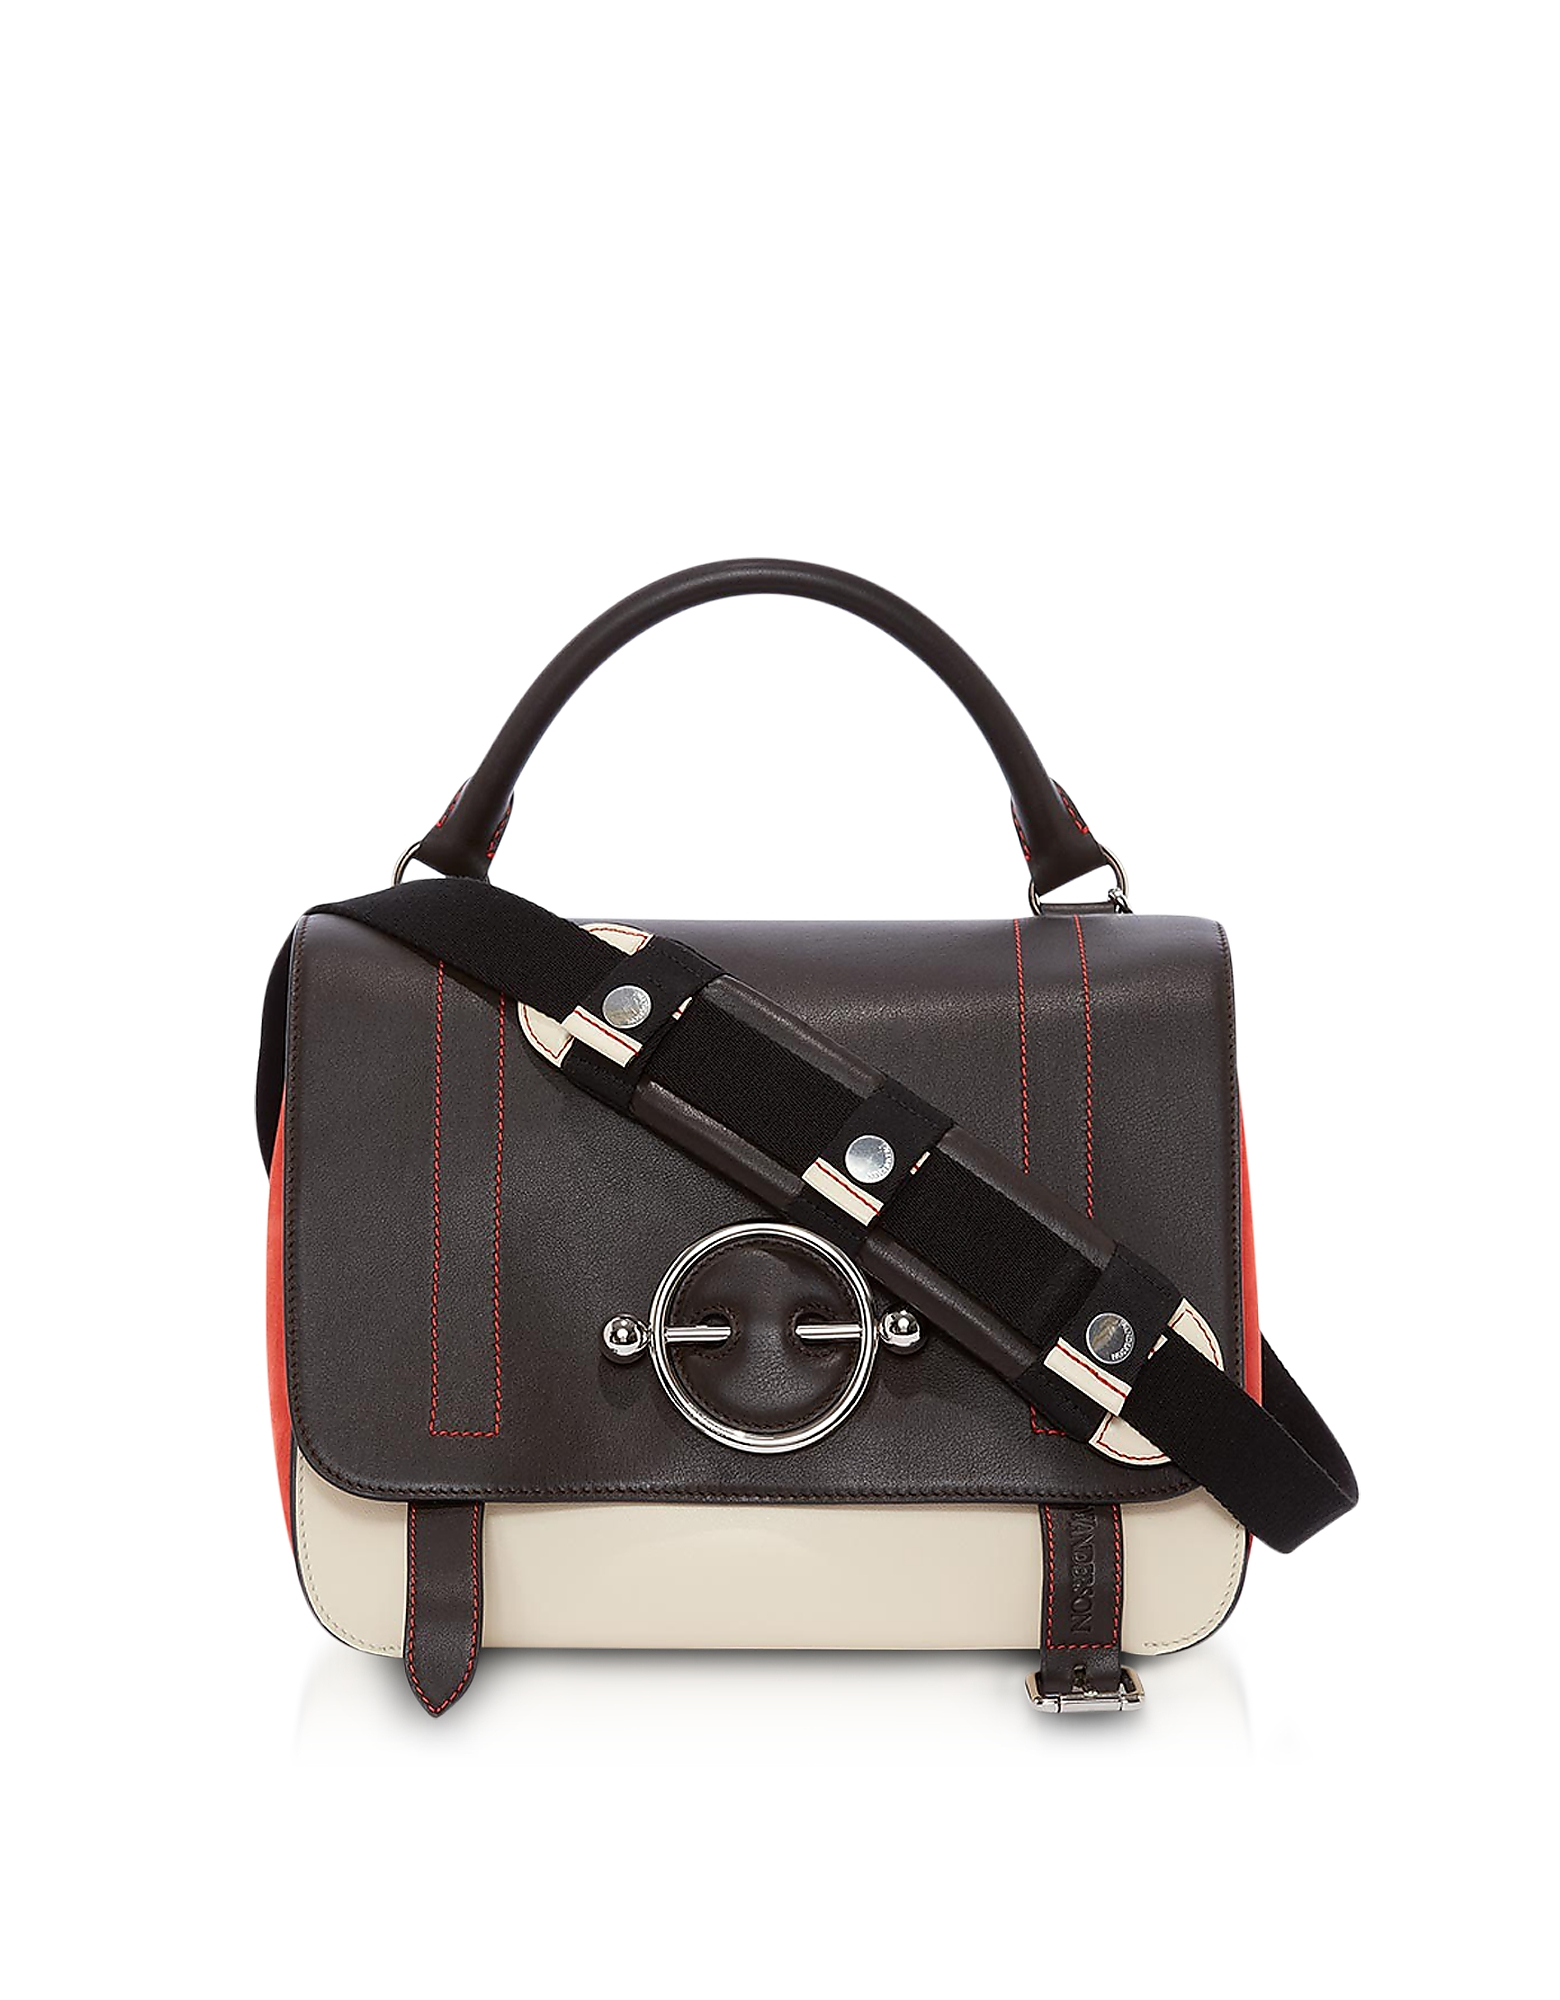 JW Anderson Handbags, Color Block Disc Satchel Bag